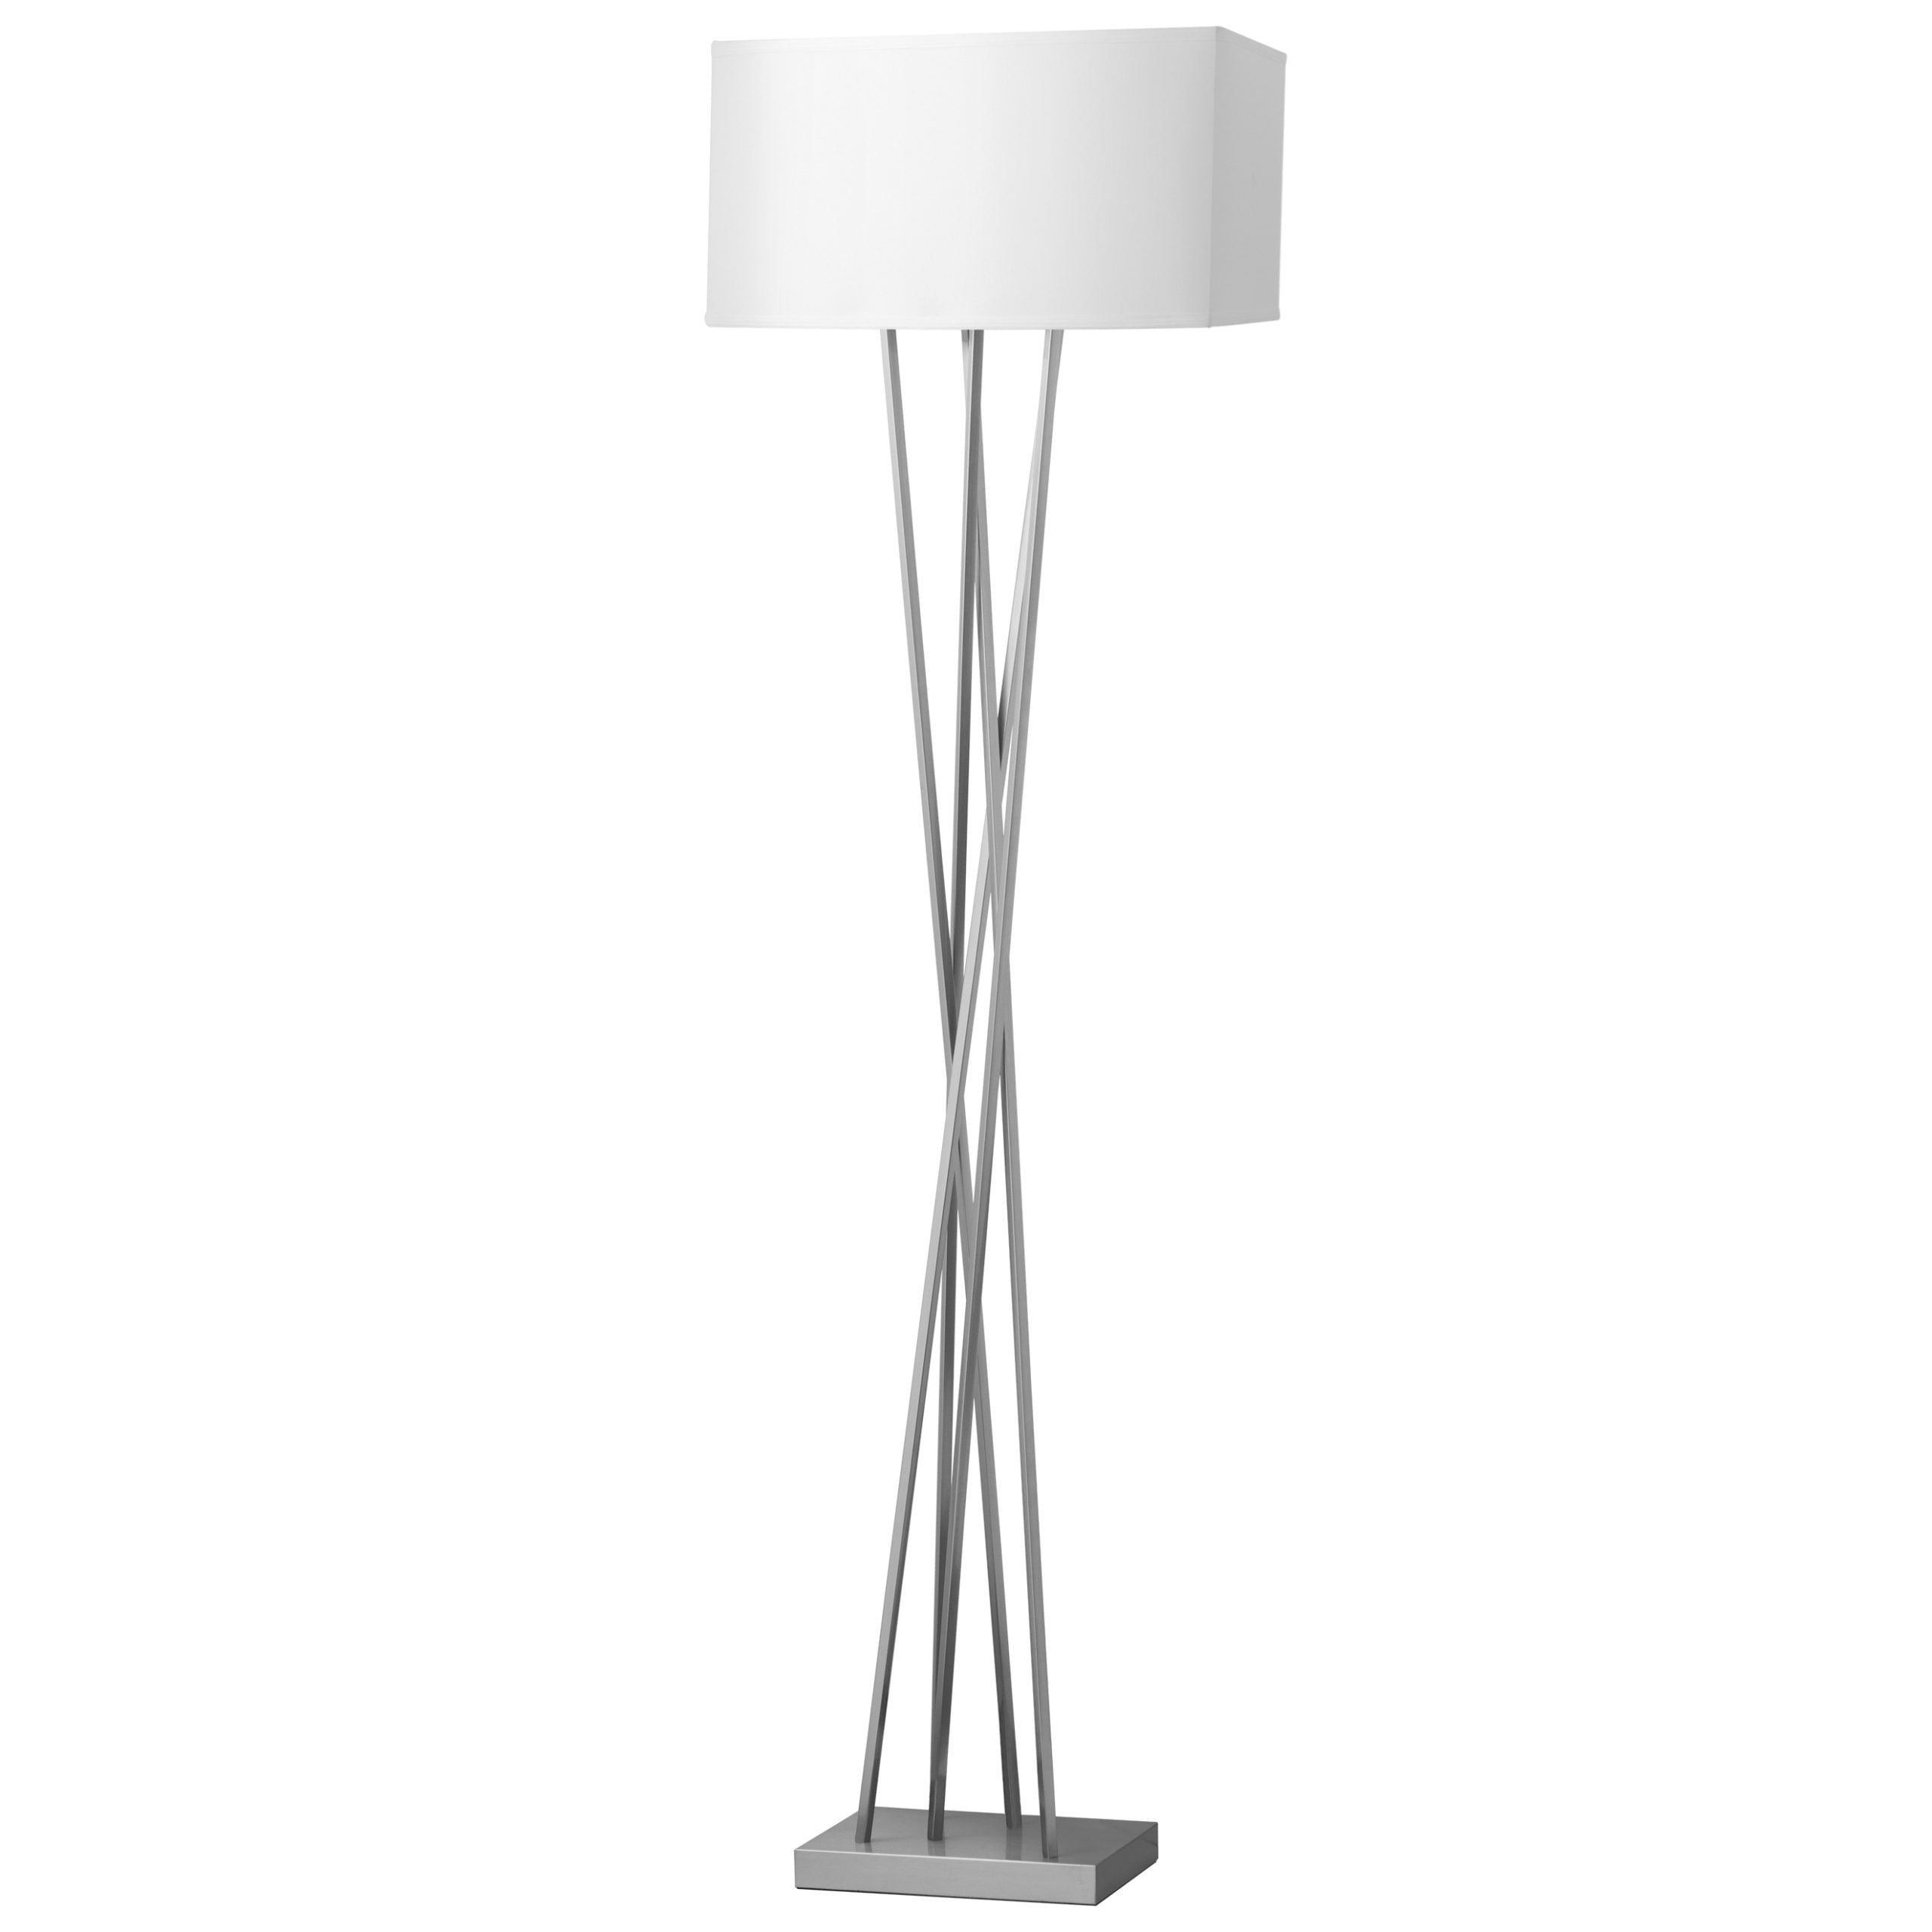 Breeze Floor Lamp - A